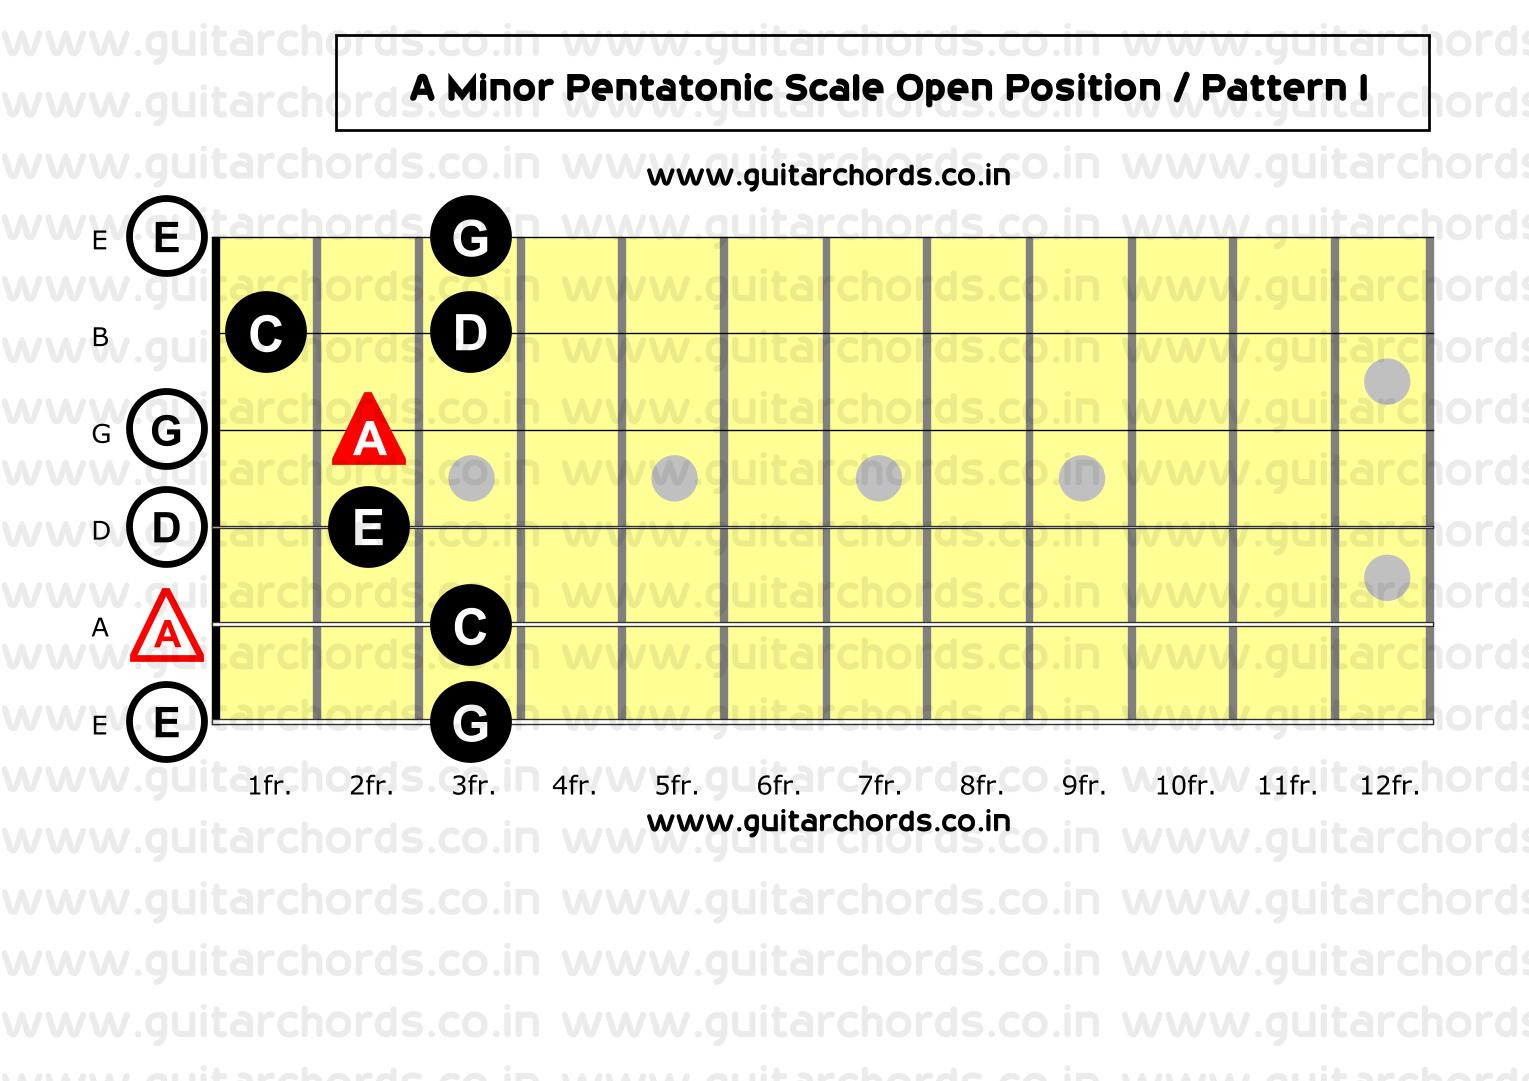 Most Essential Minor Pentatonic Scale Guitar Patterns